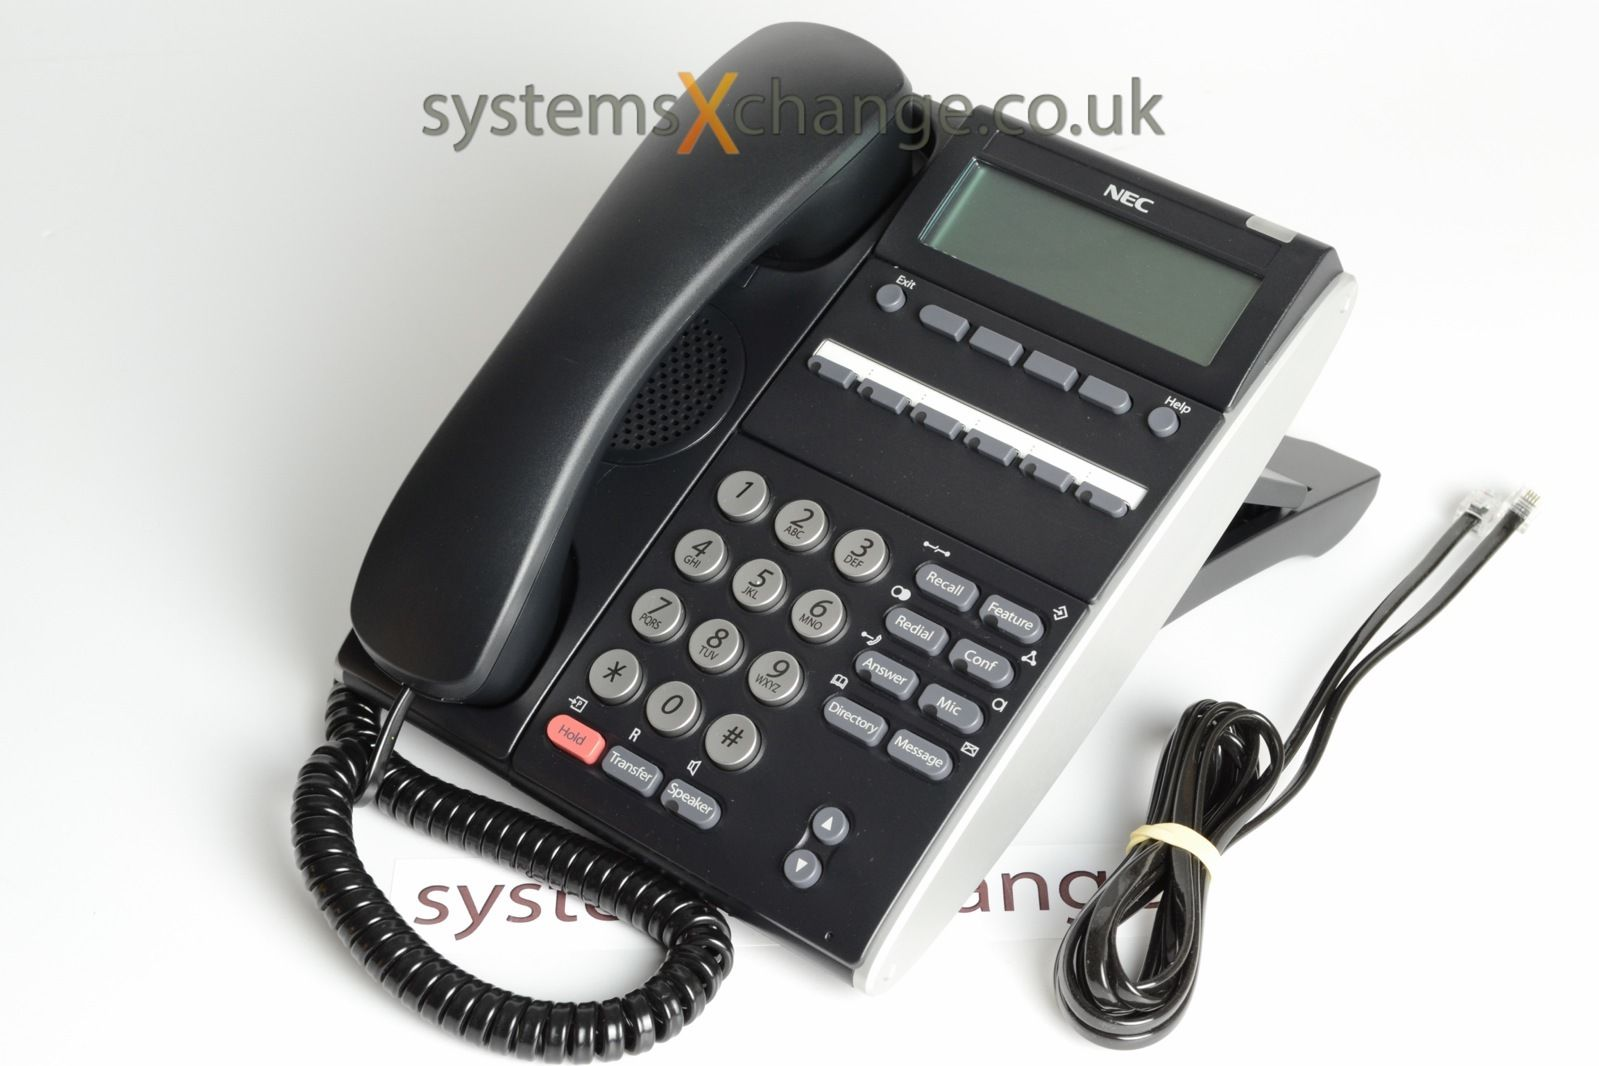 NEC DT300 Series DTL-6DE-1P Phone I 12 Months Warranty I Free Next Day  Delivery